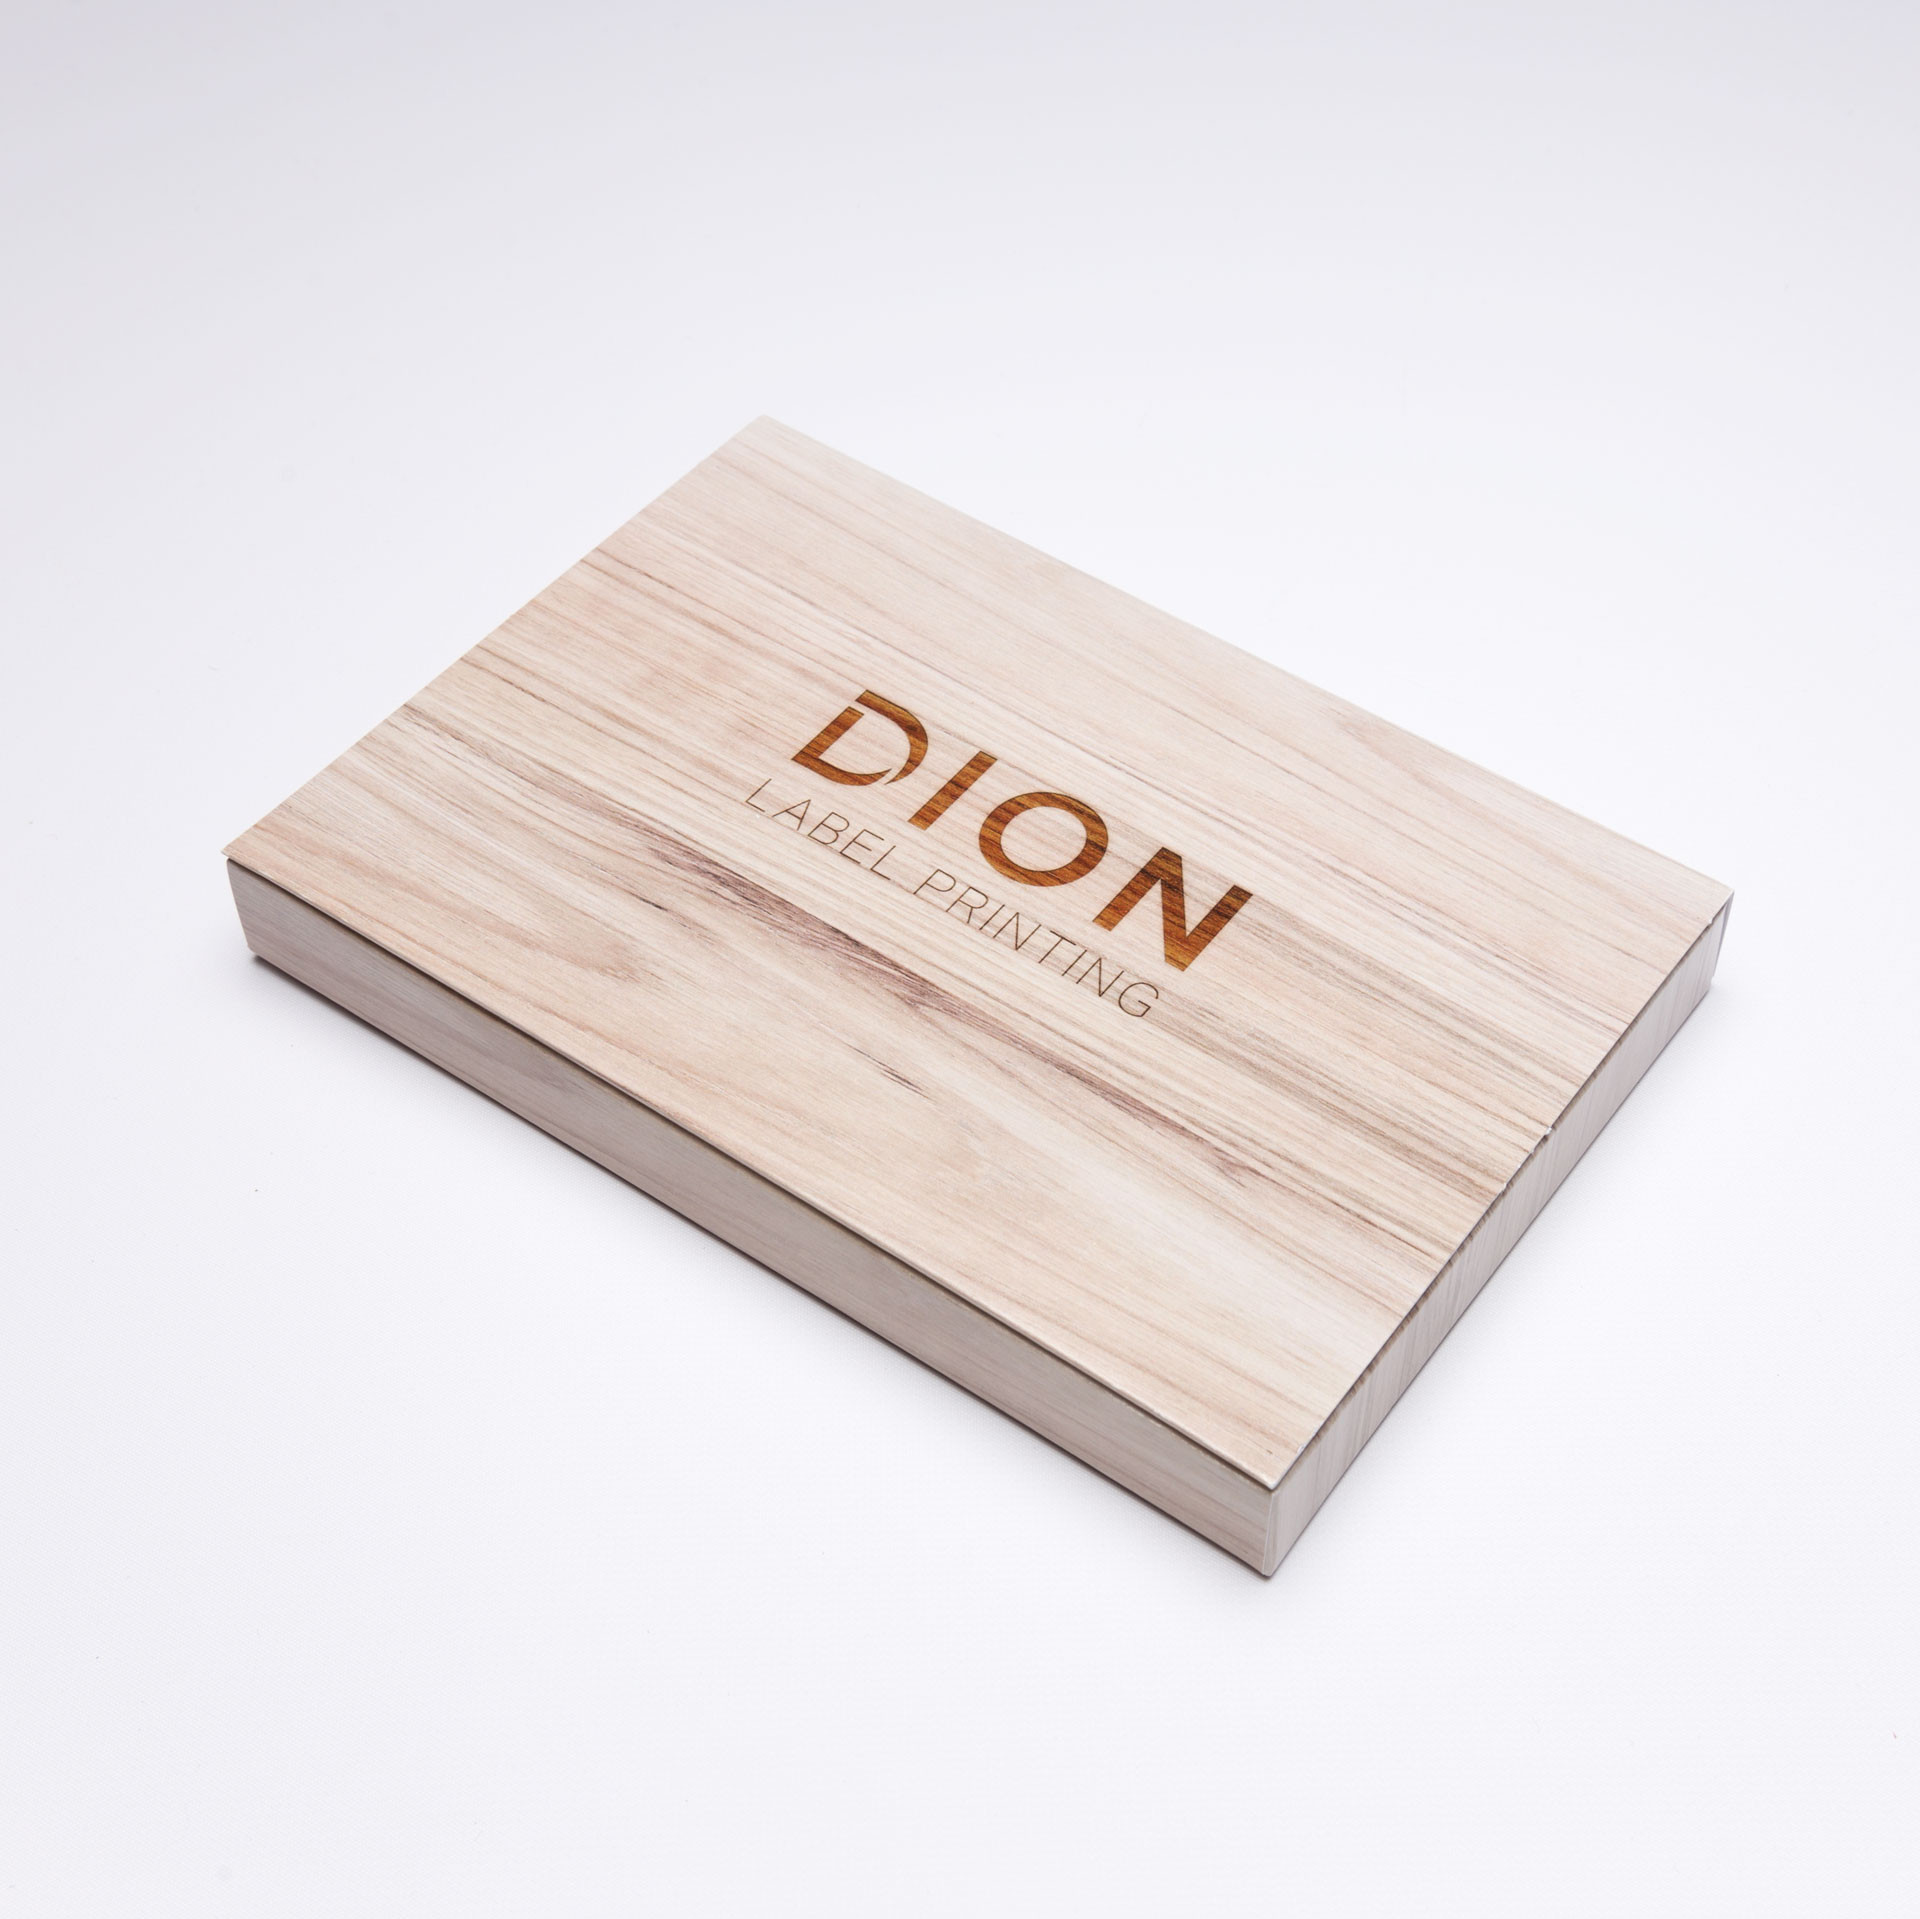 DION Label Printing Impresses with Packaging Design